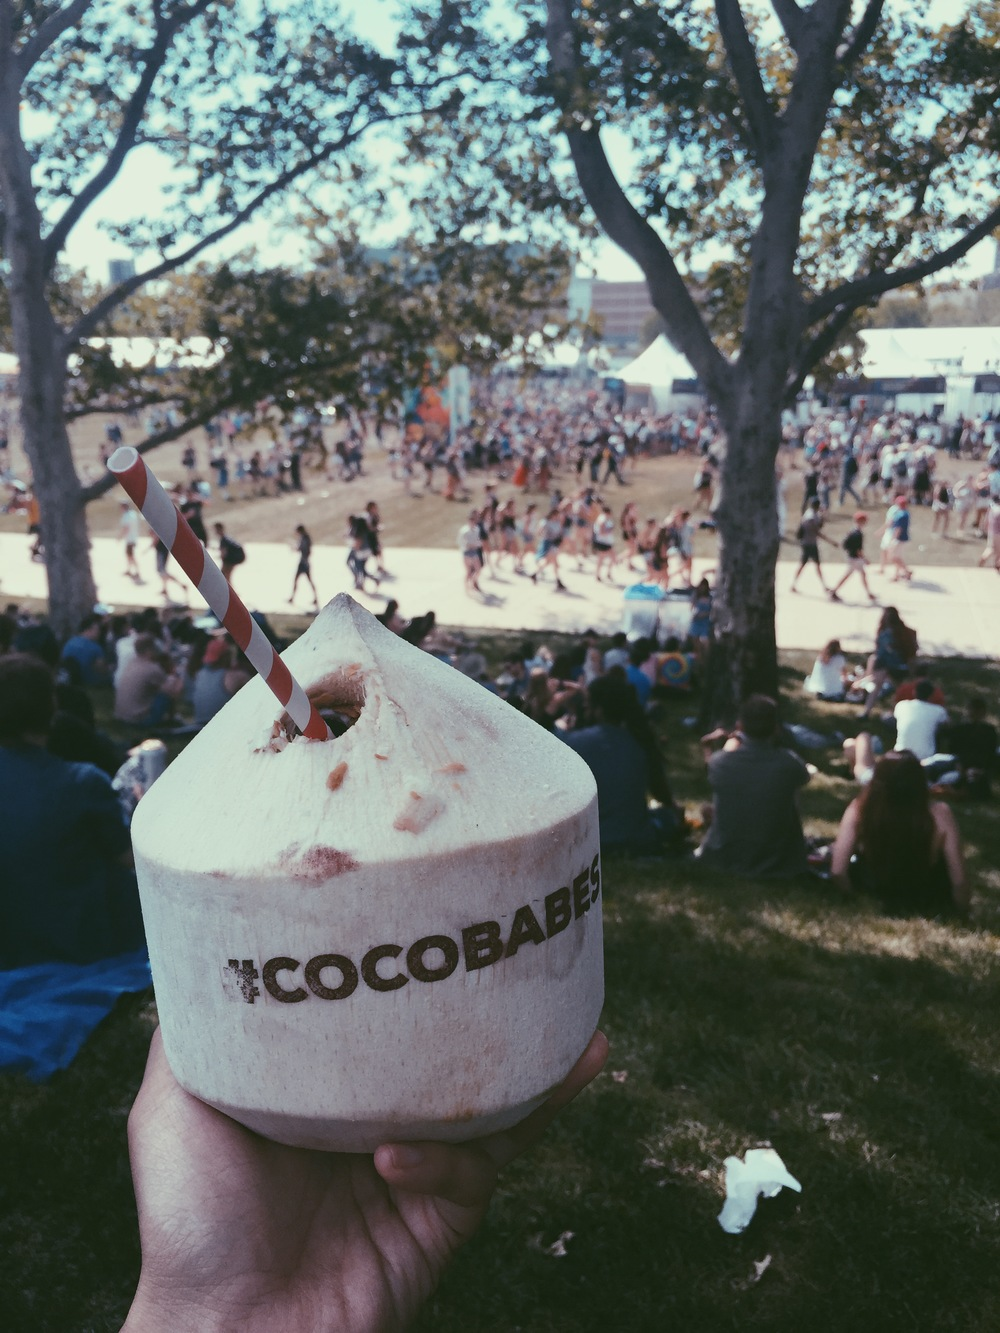 The best refreshing drink from Gov Ball.